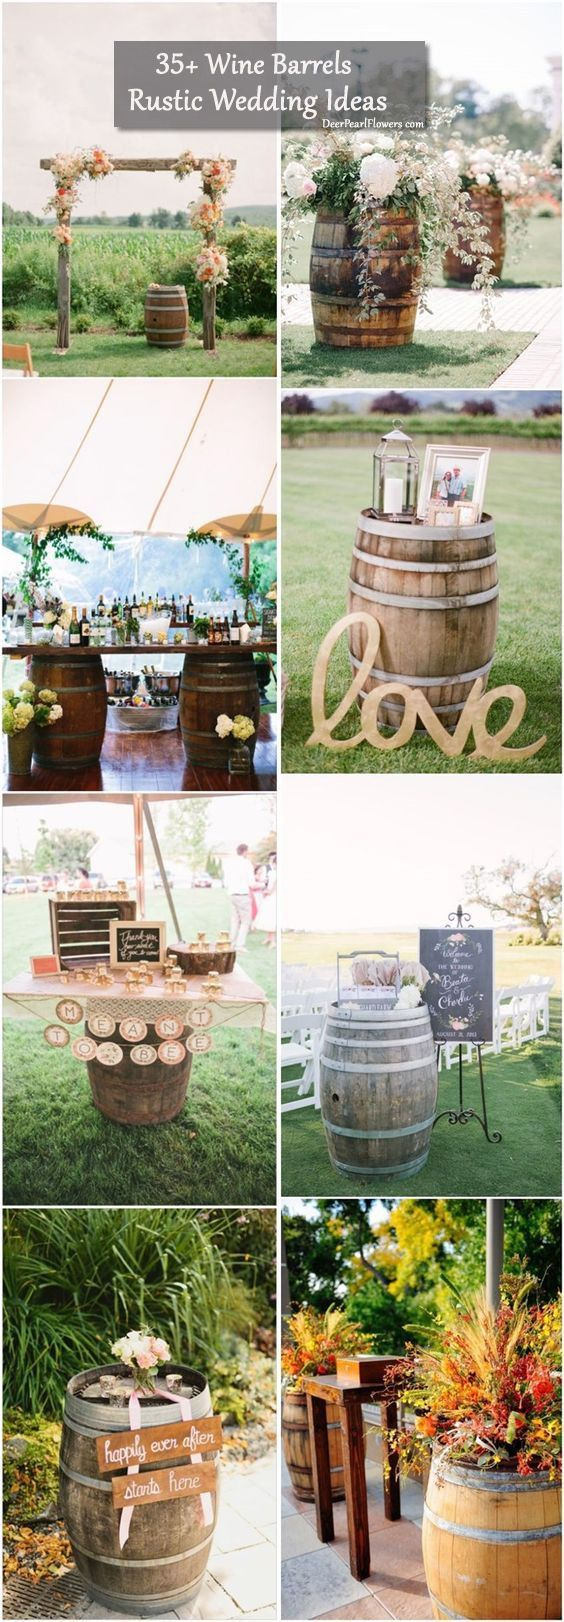 Gallery: Rustic Country Wedding Ideas to Use Wine Barrels - Deer Pearl Flowers / http://www.deerpearlflowers.com/35-creative-rustic-wedding-ideas-to-use-wine-barrels/rustic-country-wedding-ideas-to-use-wine-barrels/